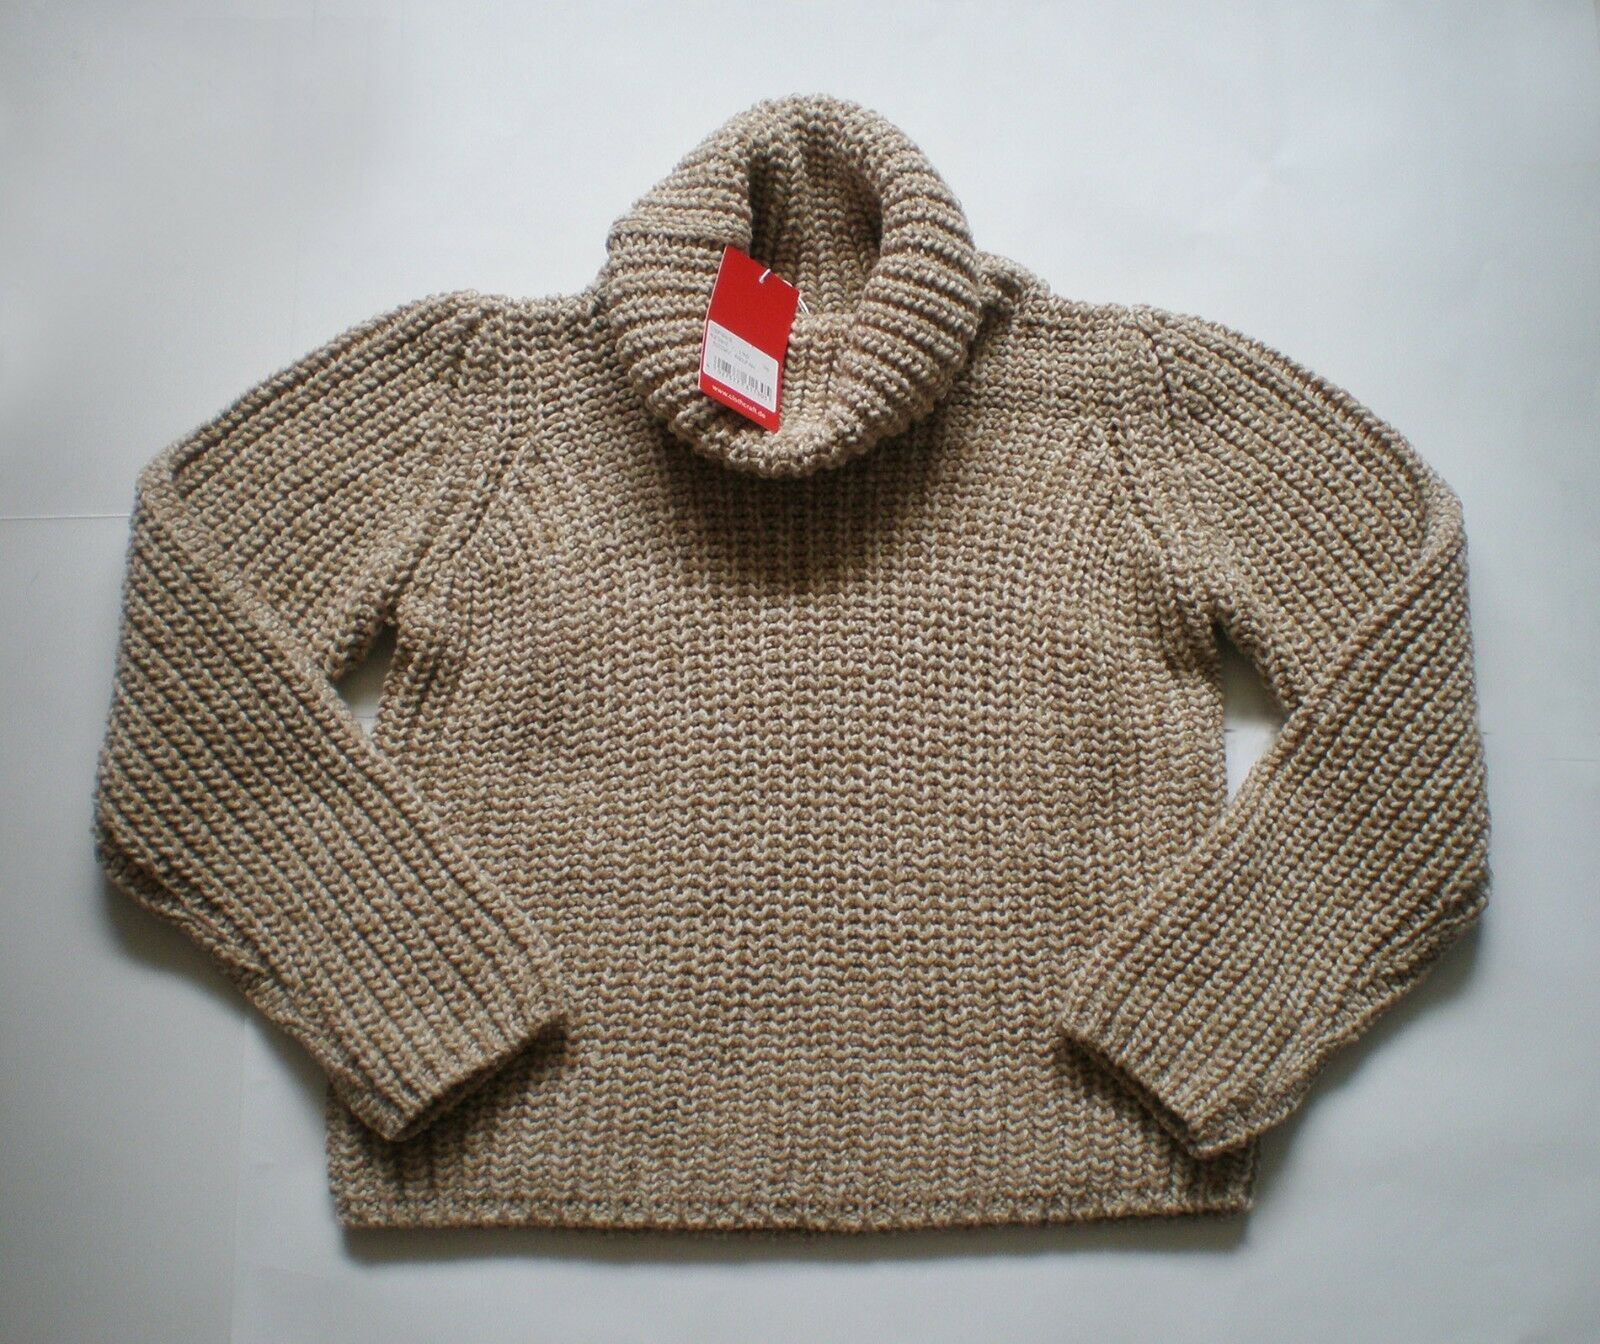 Clothcraft-pullover sweater, nuovo, tg. 36